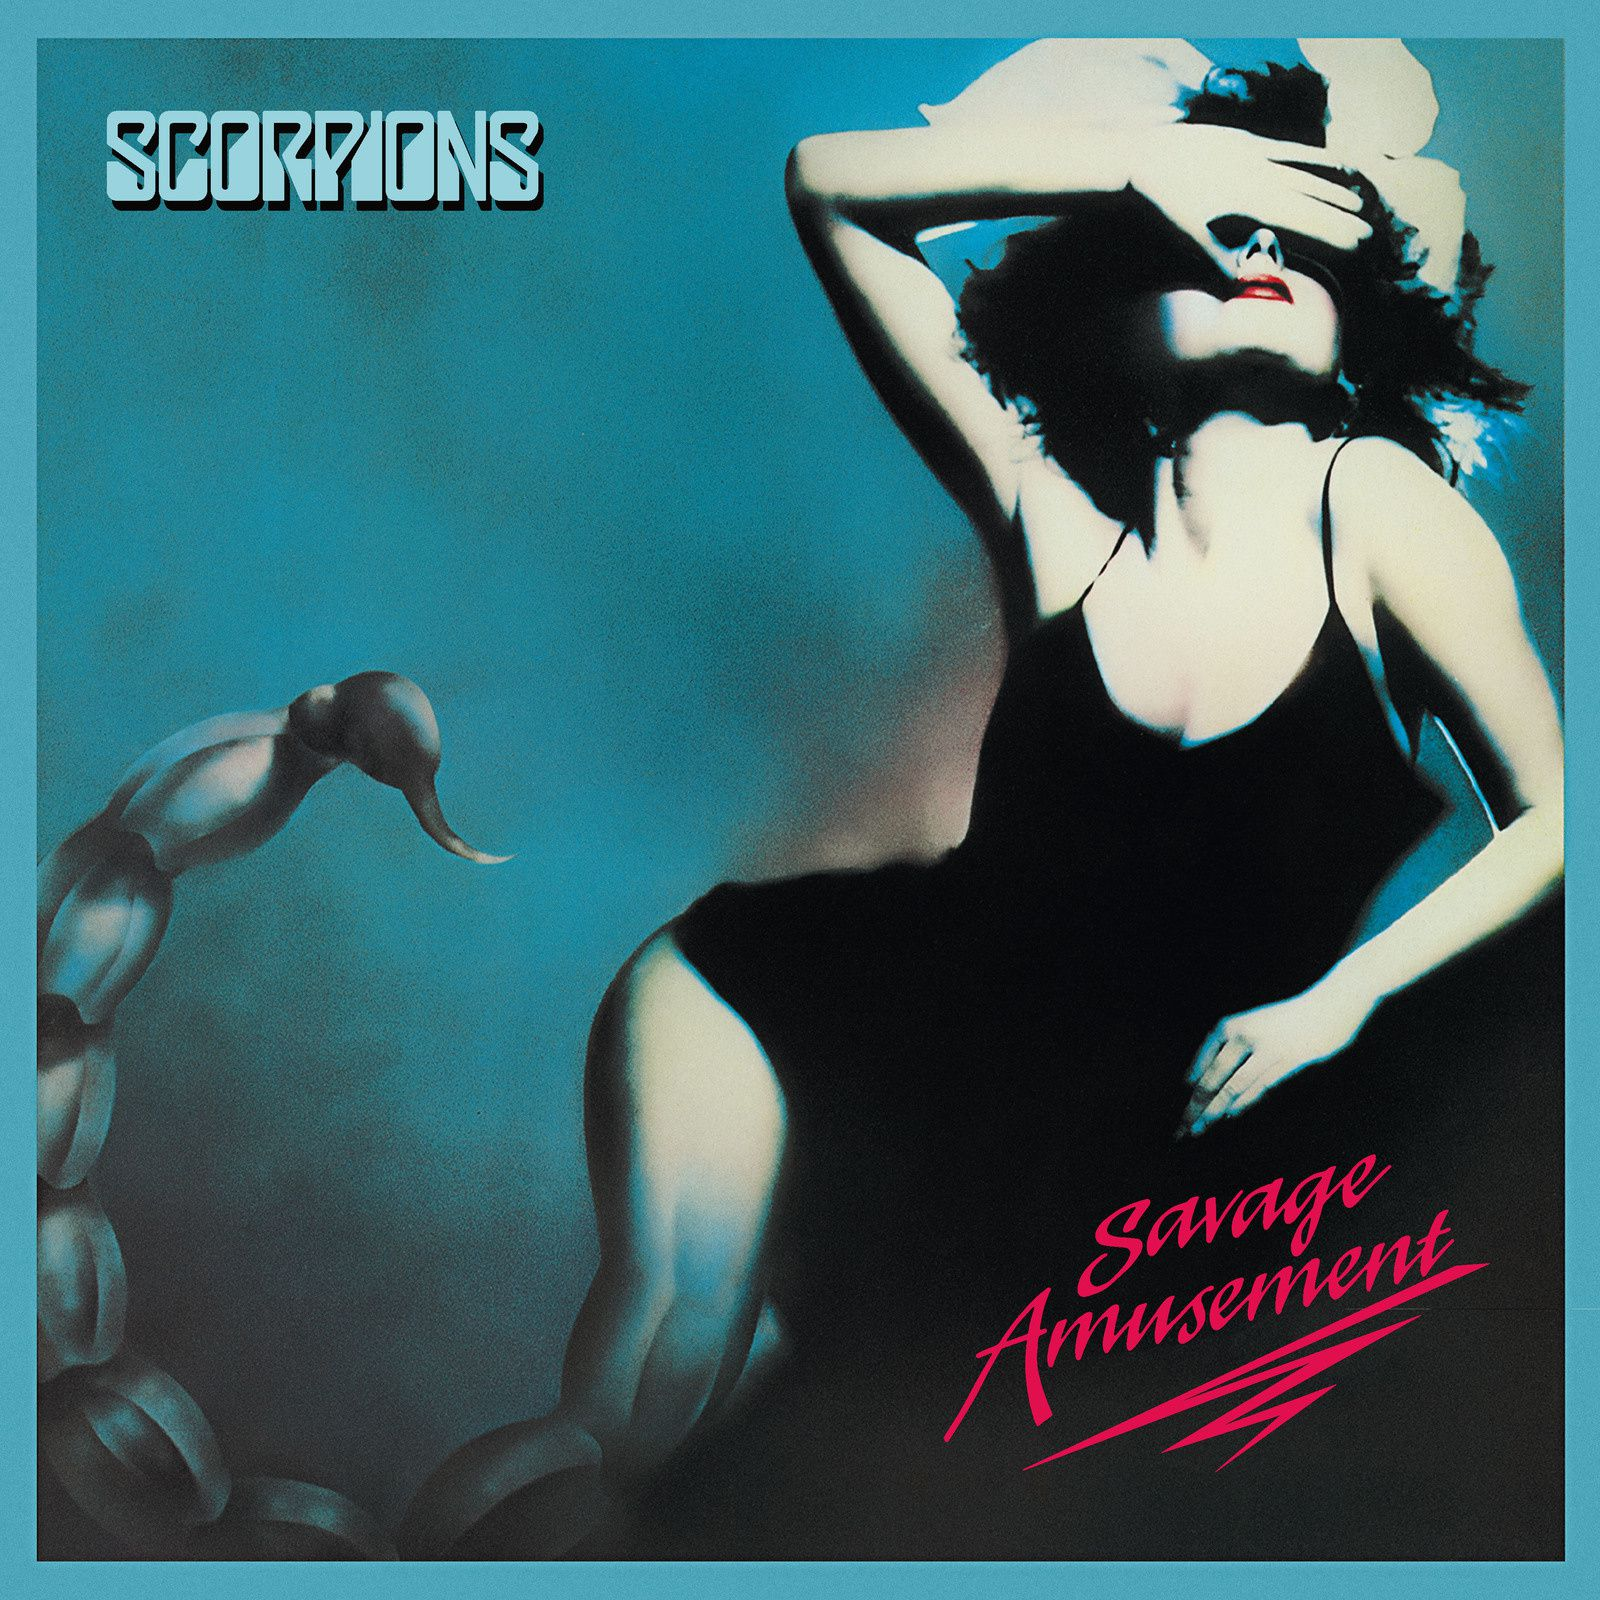 CD review SCORPIONS &quot&#x3B;Savage Amusement&quot&#x3B; 50th Anniversary Edition